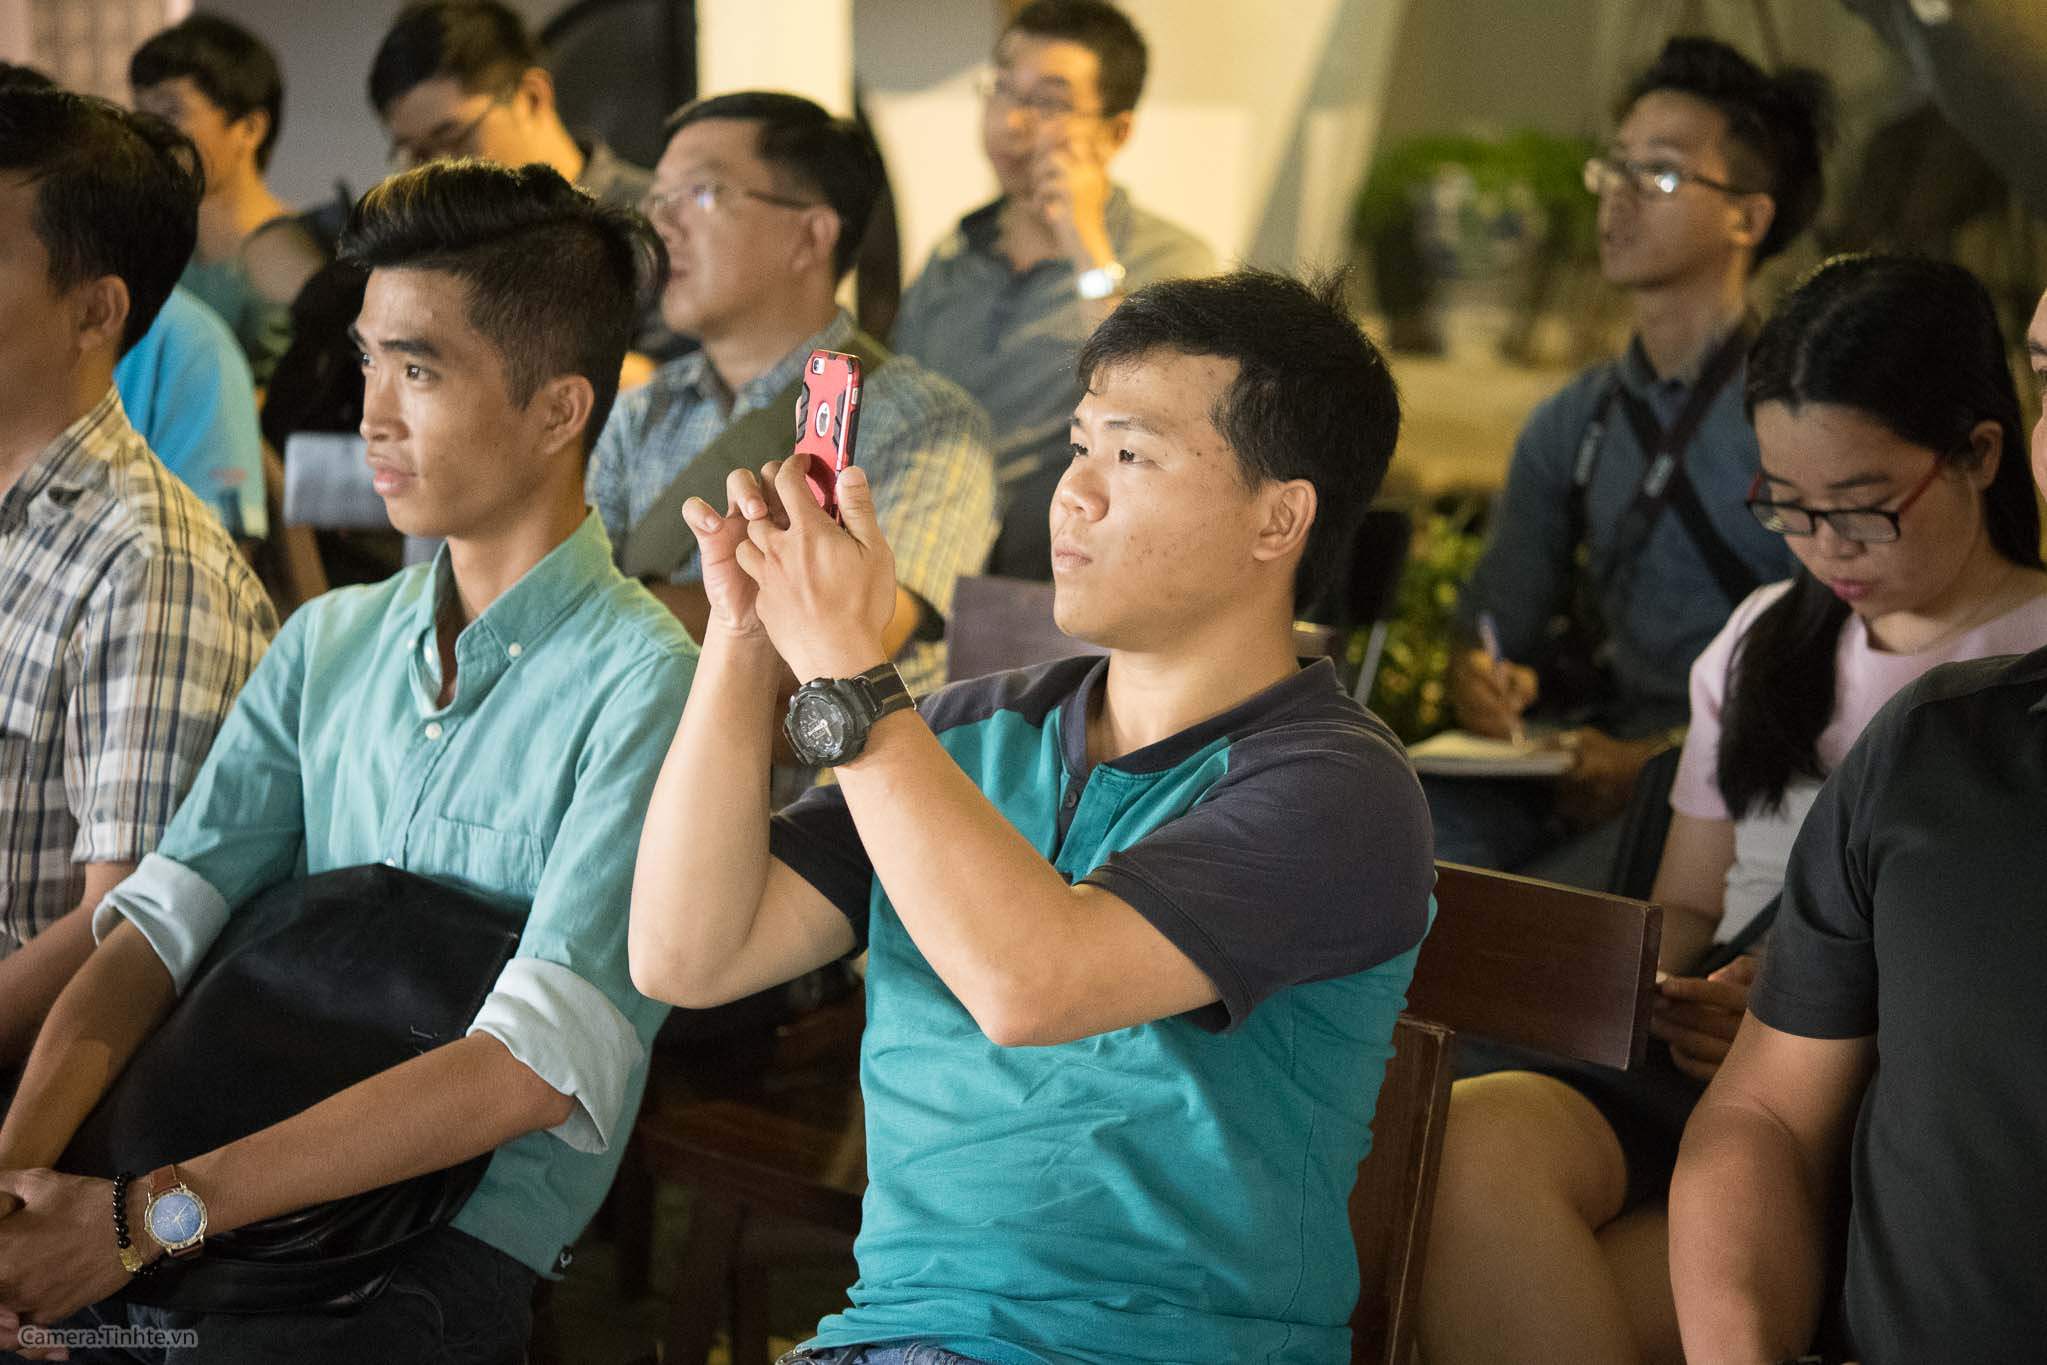 Workshop chup anh the thao - Camera.tinhte.vn-22.jpg